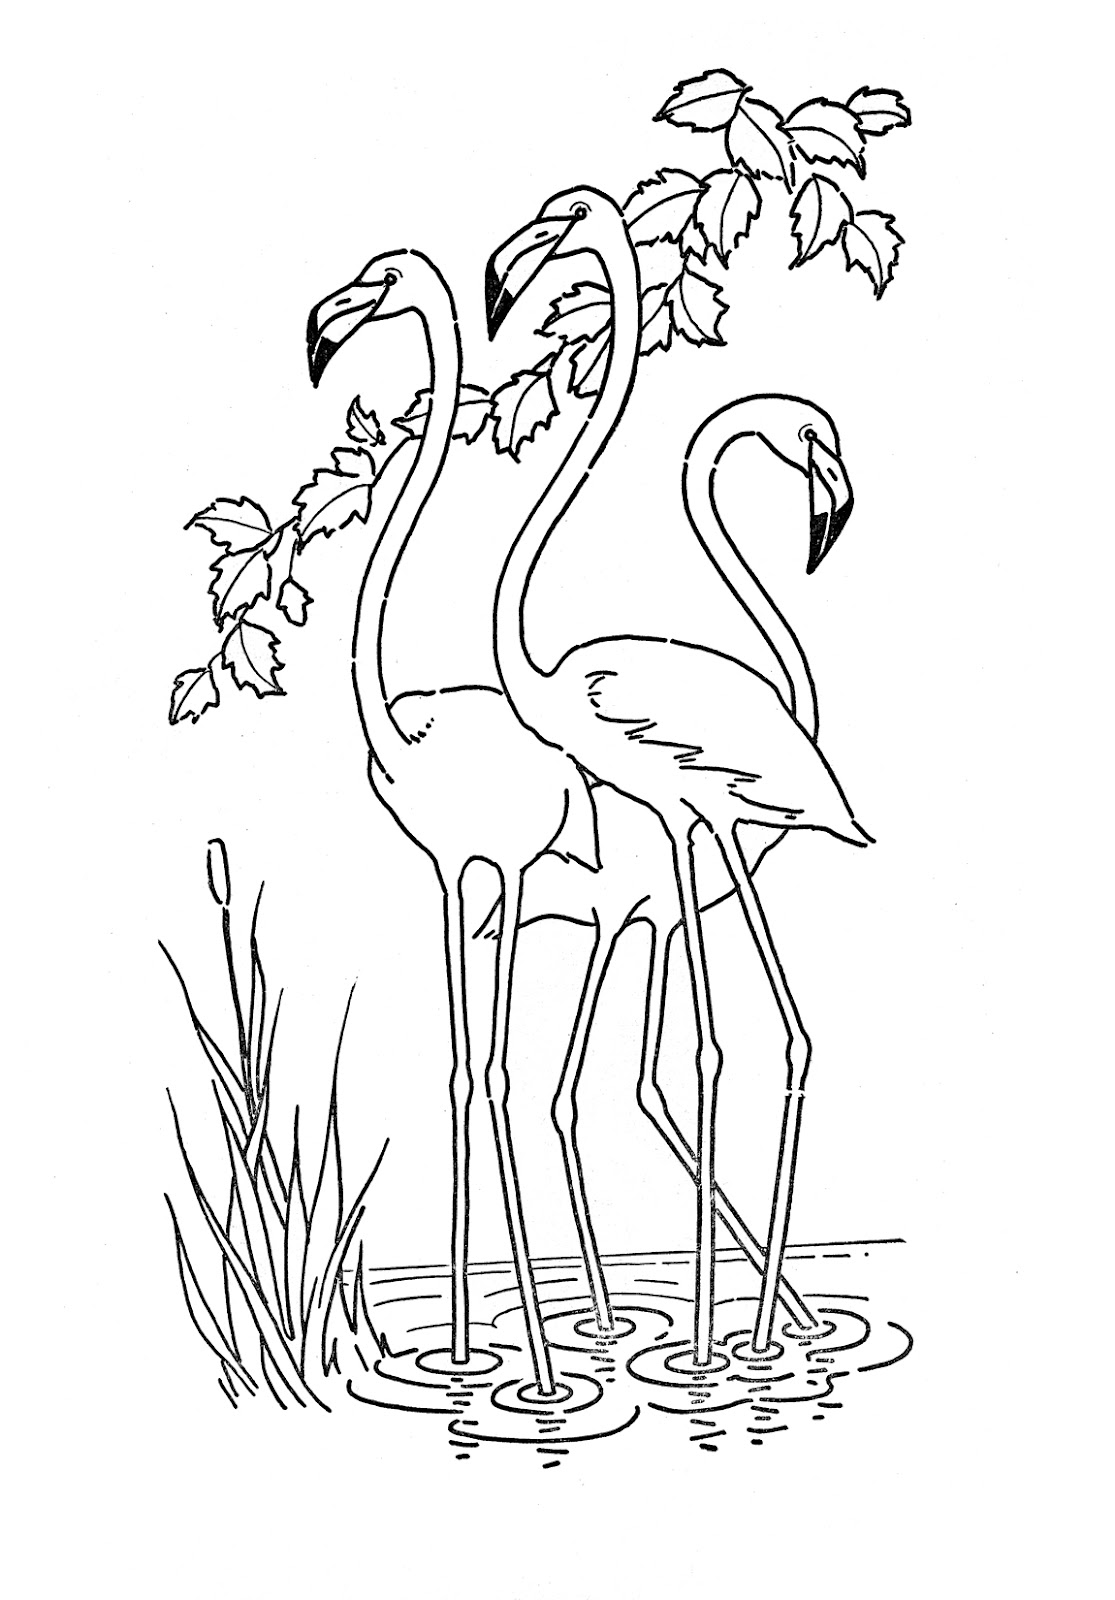 coloring art pages art therapy coloring pages to download and print for free pages art coloring